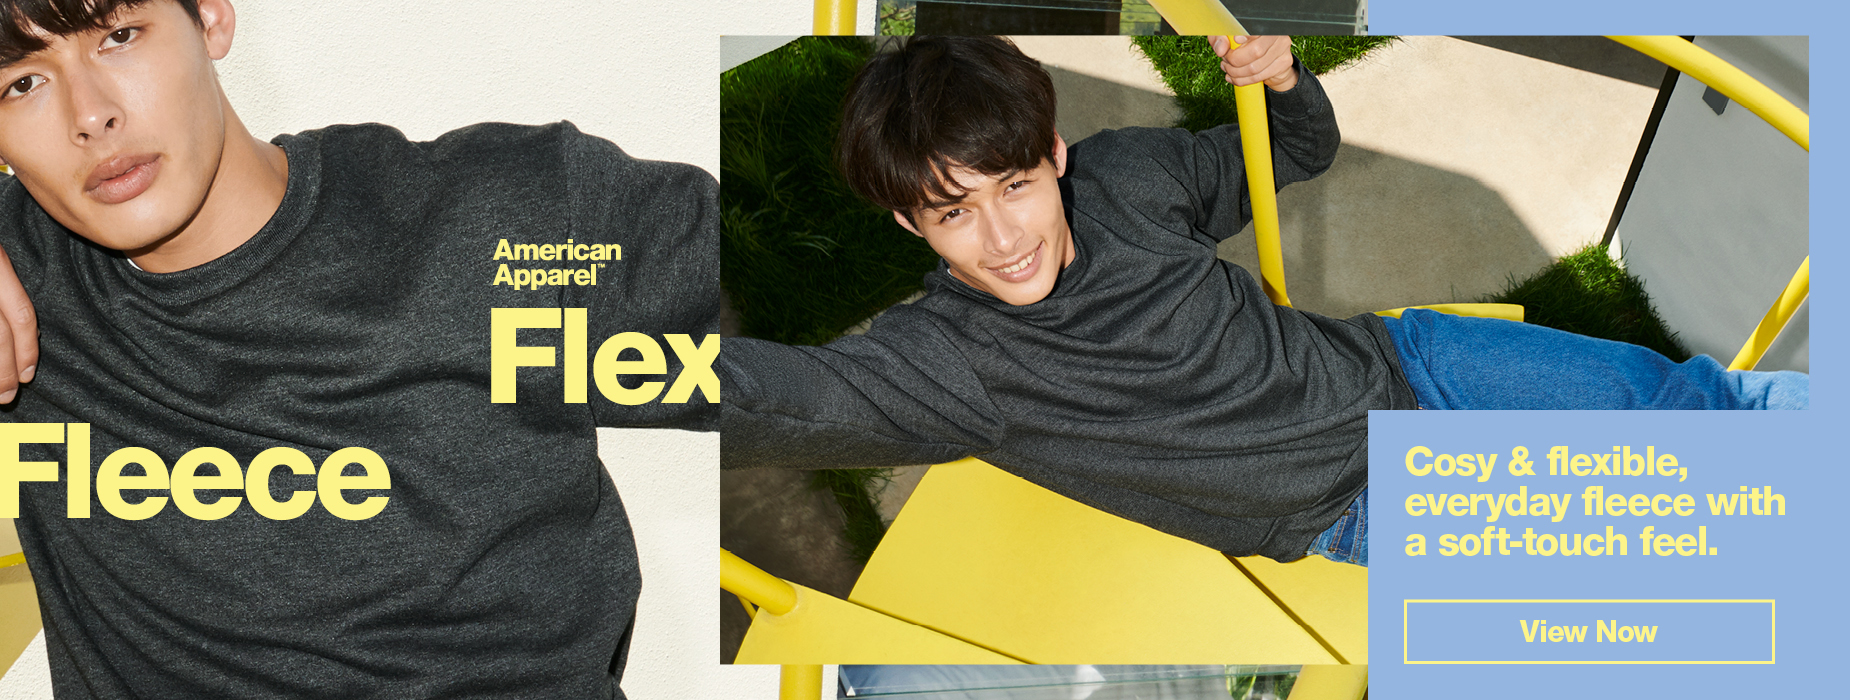 View Now our Flex Fleece Collection. Cosy & Flexible, everyday fleece with a touch of soft-touch feel | American Apparel Europe